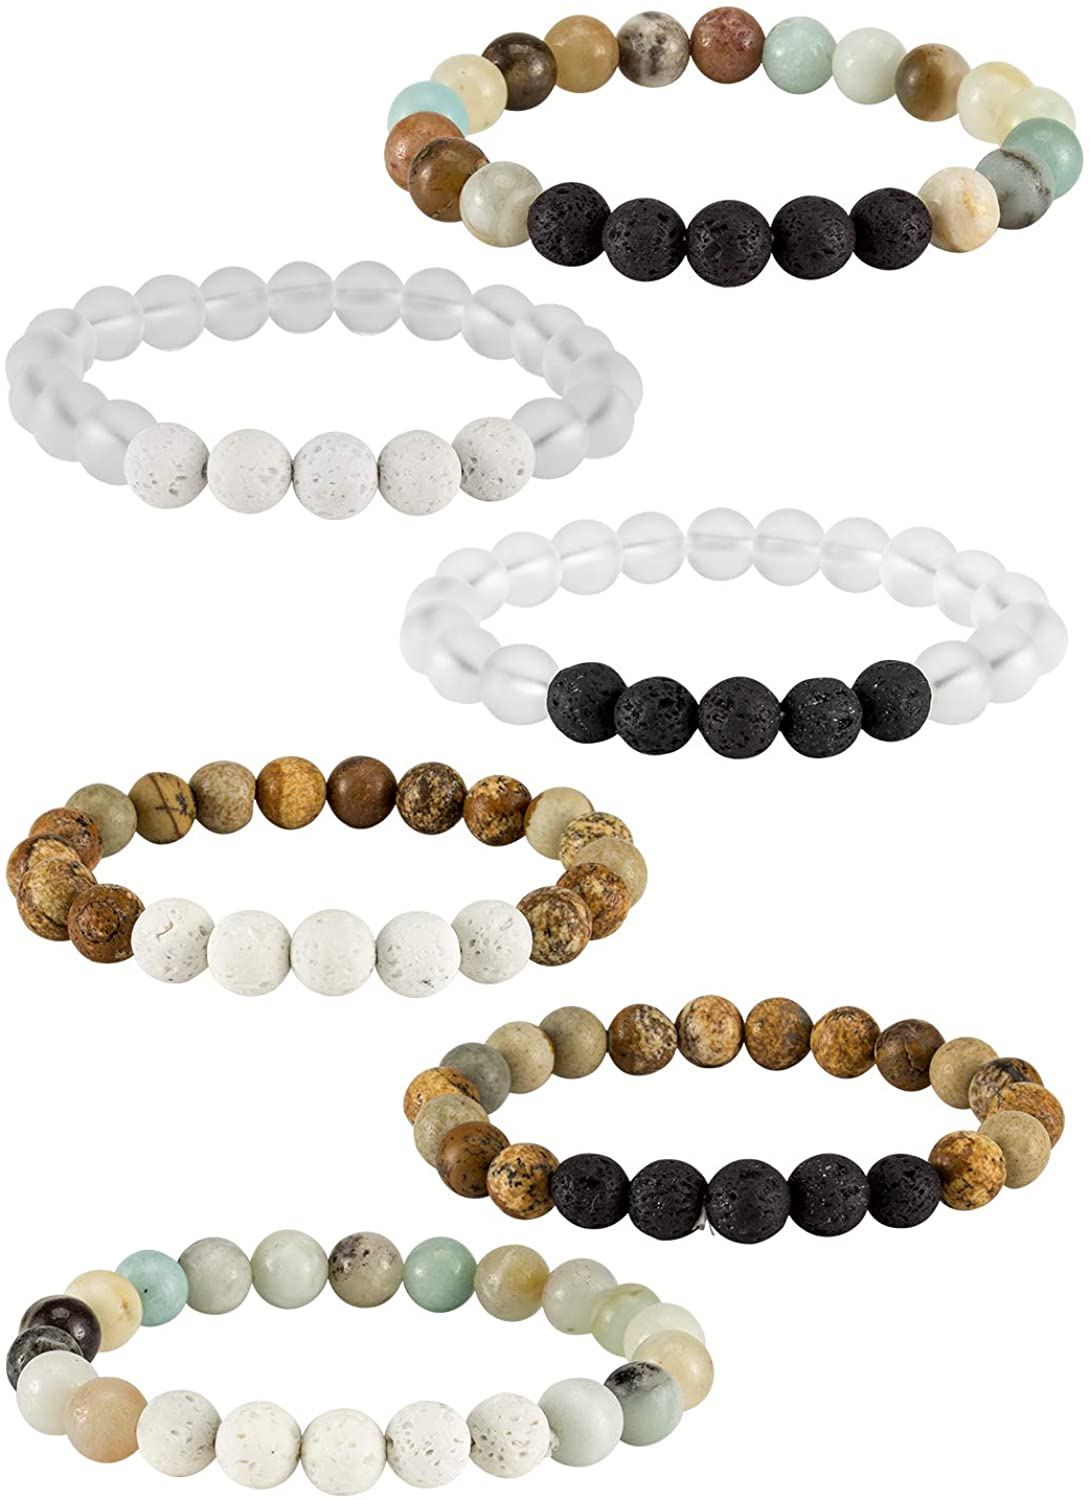 6 Pcs Lava Stone Bead Bracelet, Natural Gemstone Stretchy Bracelets- Aromatherapy Essential Oil Diffuser Healing Chakras Agate Crystal Elastic Lucky Bracelets Christmas gifts